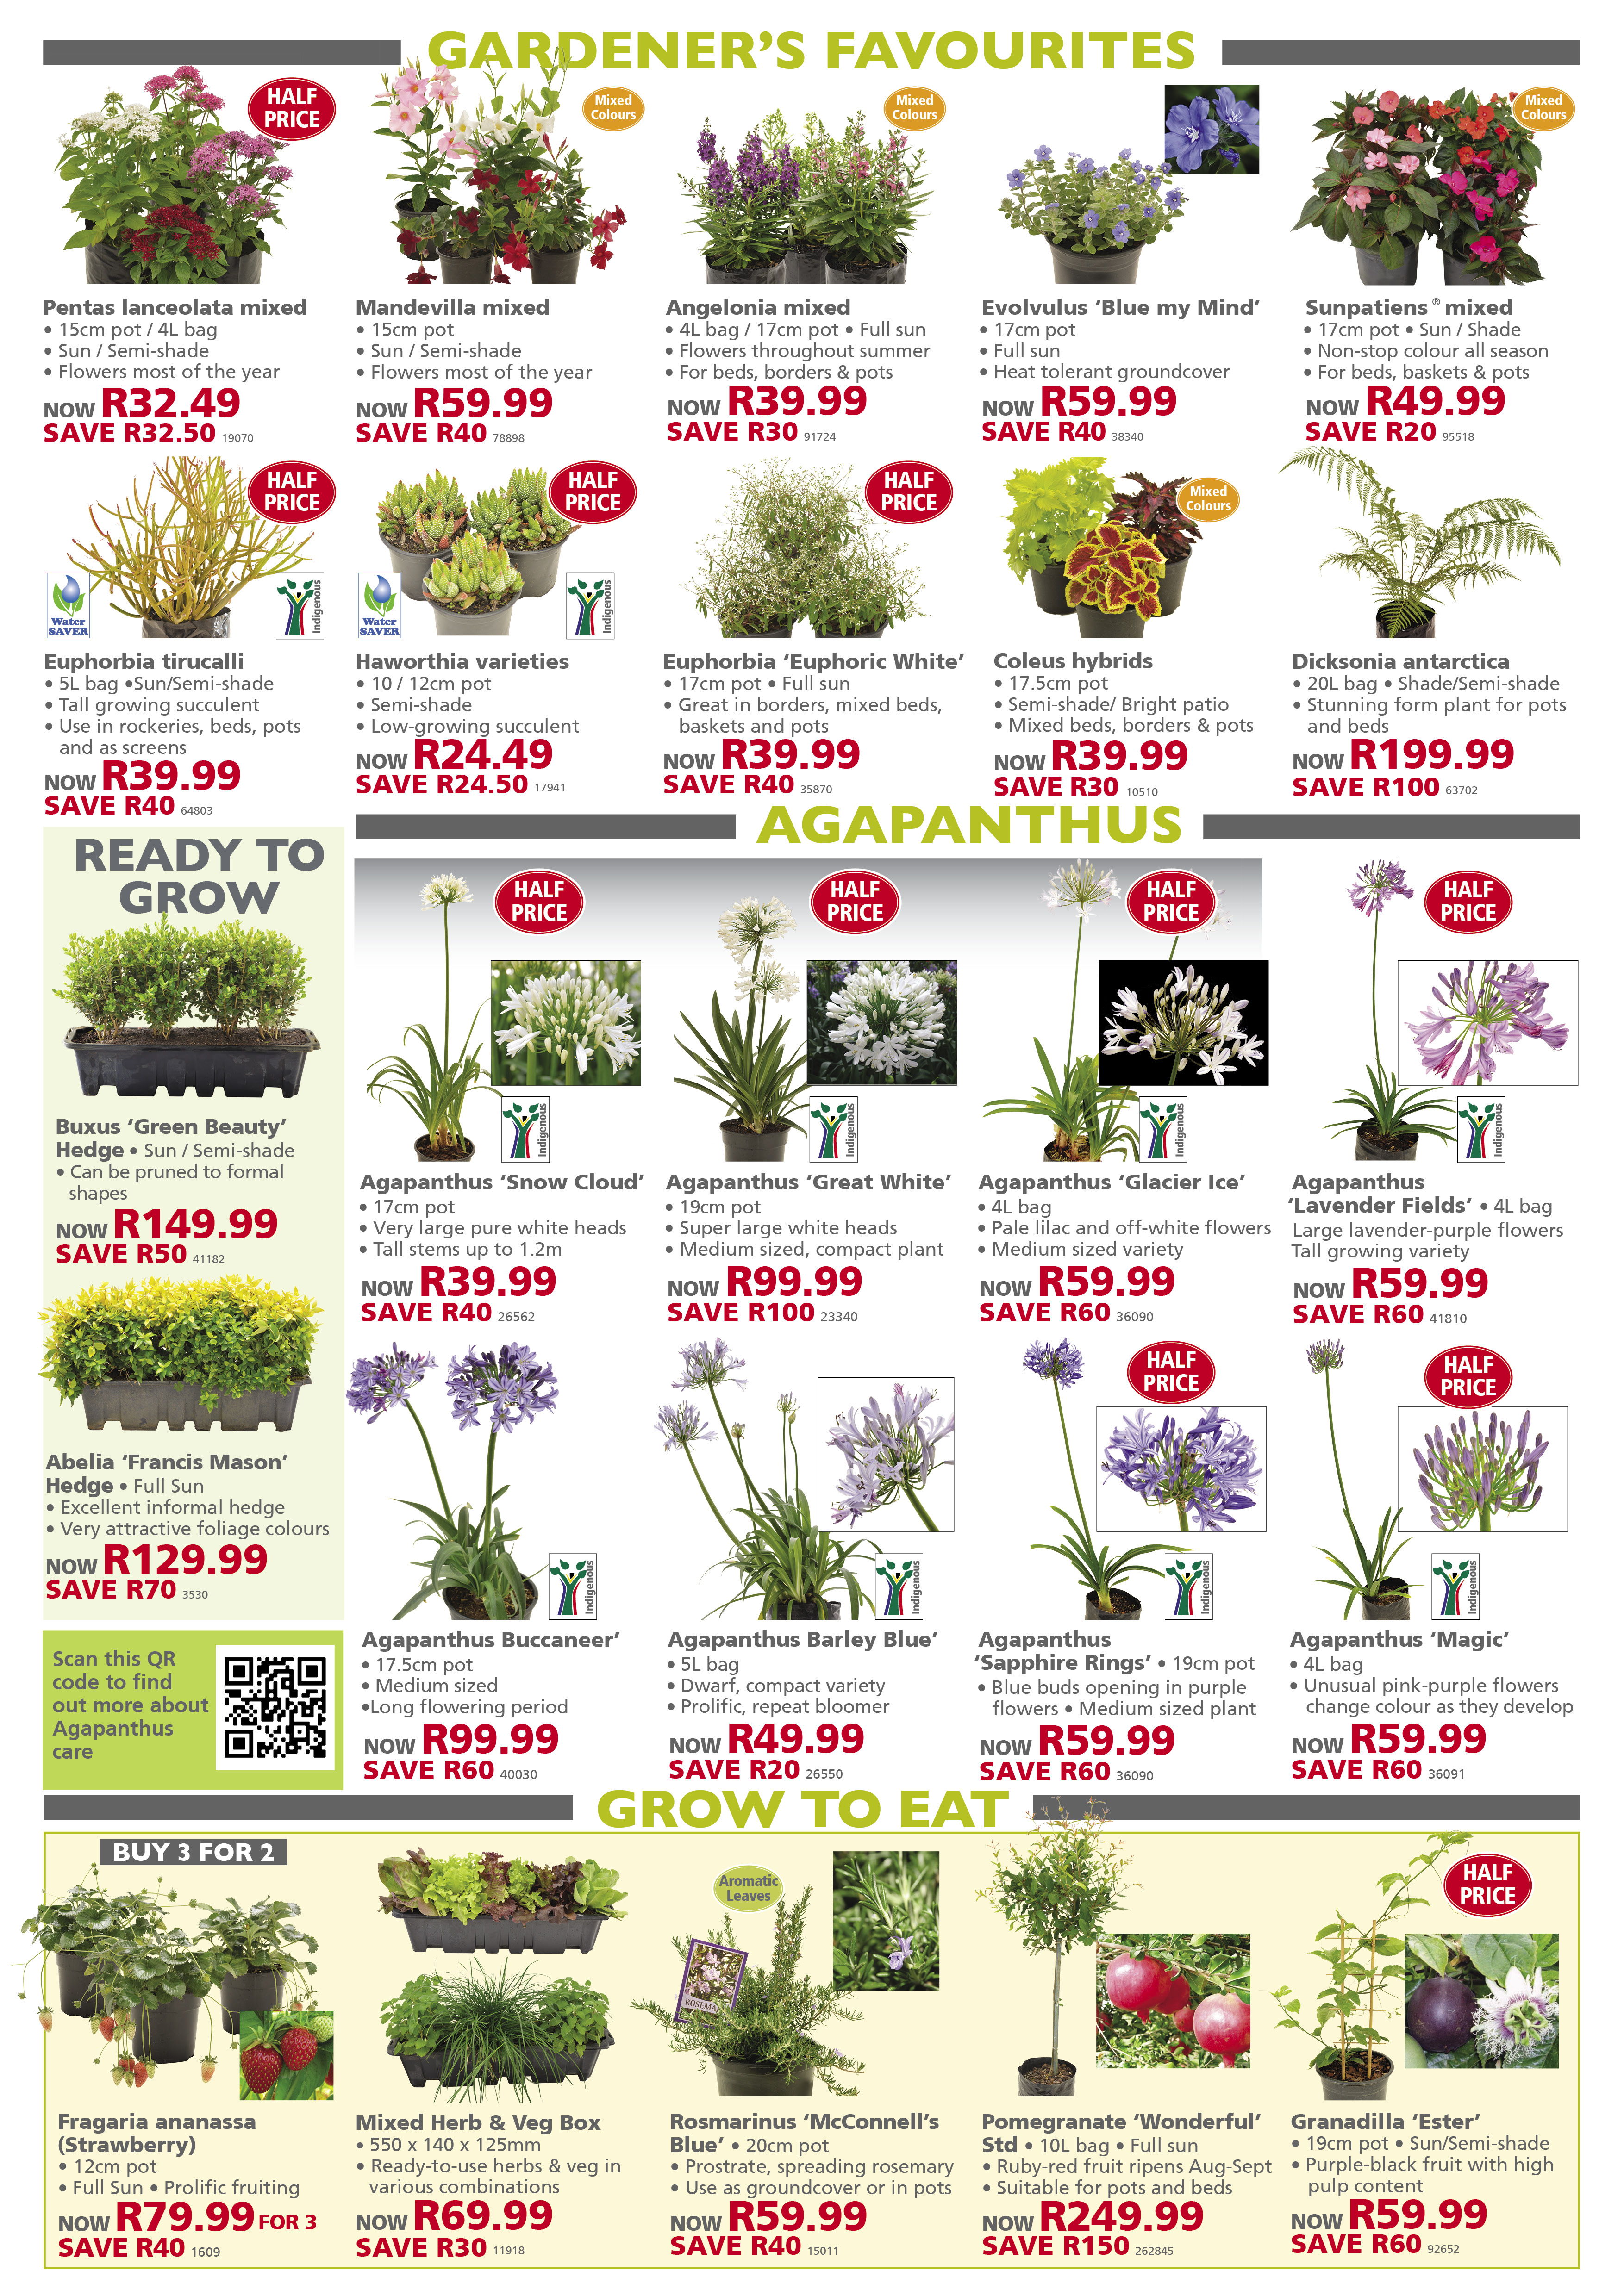 lifestyle home garden specials festive season christmas nursery plant shop